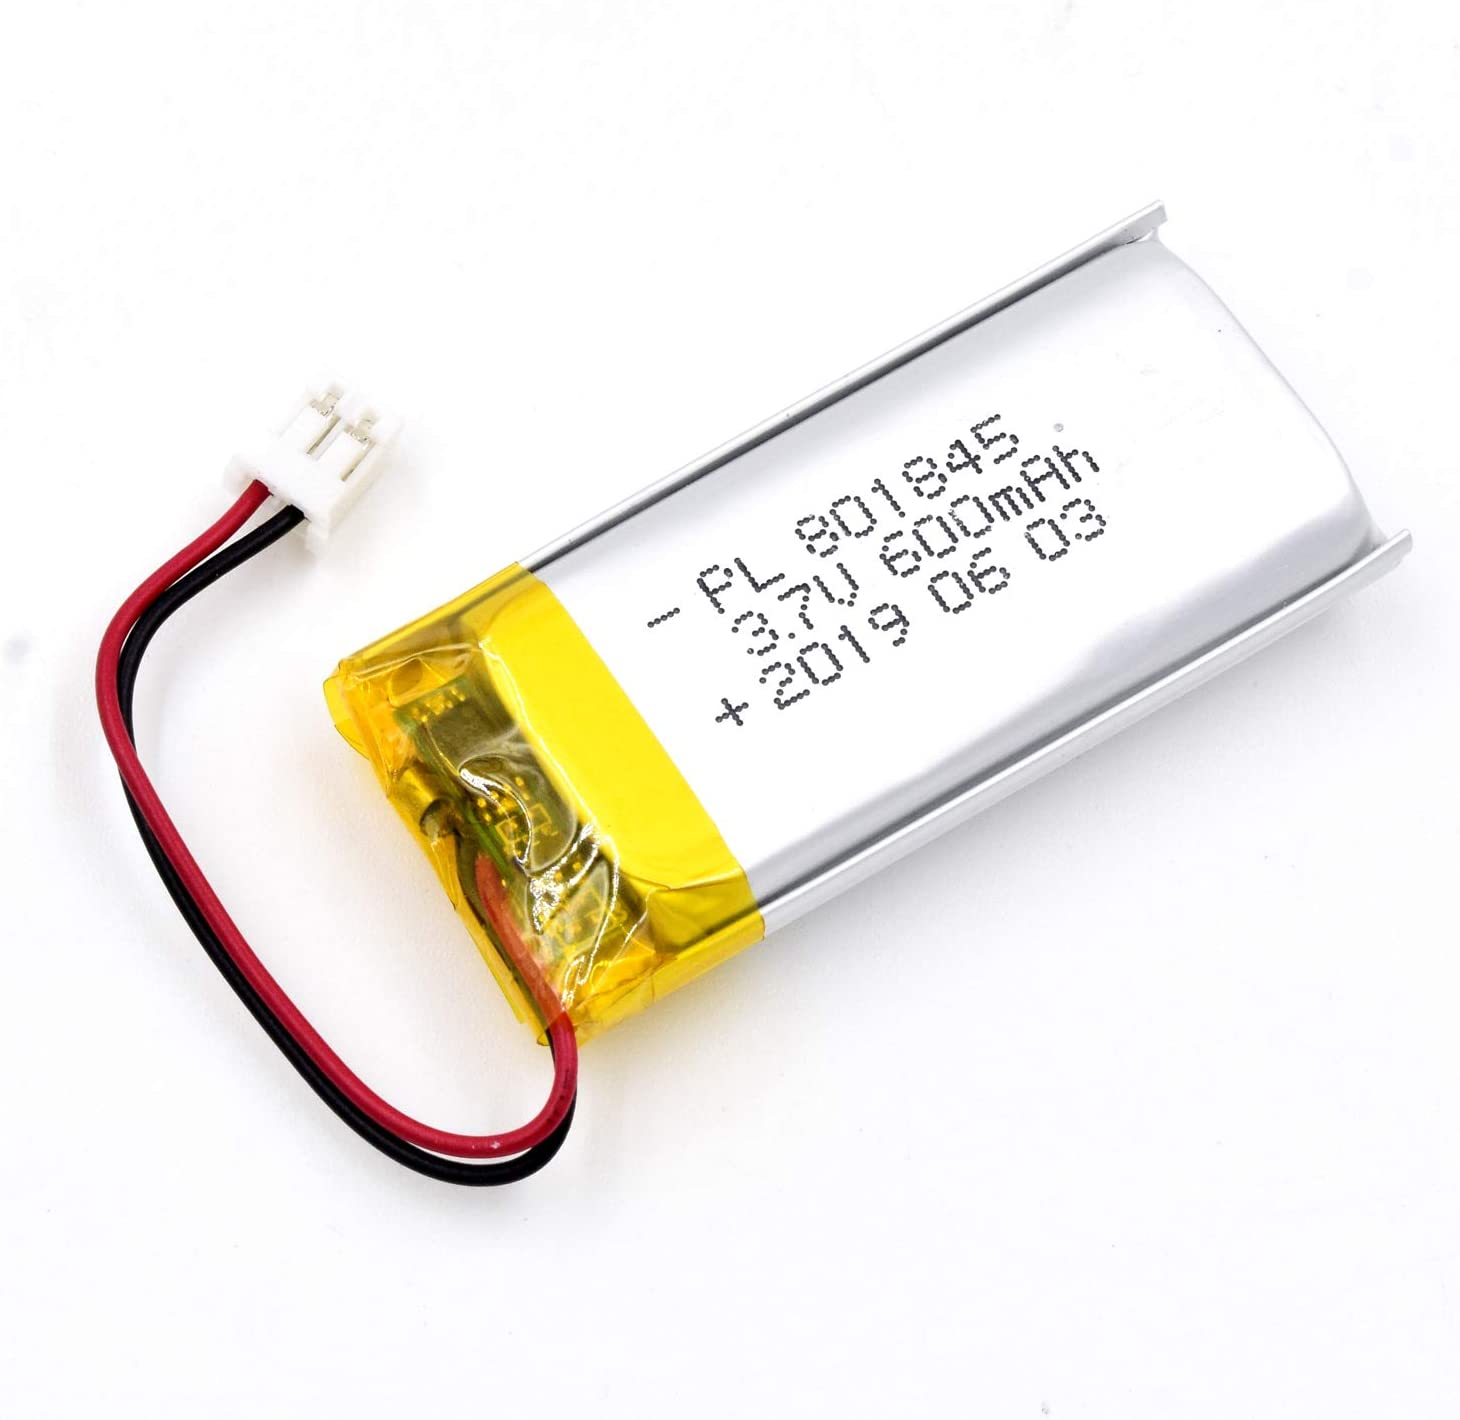 AKZYTUE 3.7V 600mAh 801845 Lipo Battery Rechargeable Lithium Polymer ion Battery Pack with JST Connector